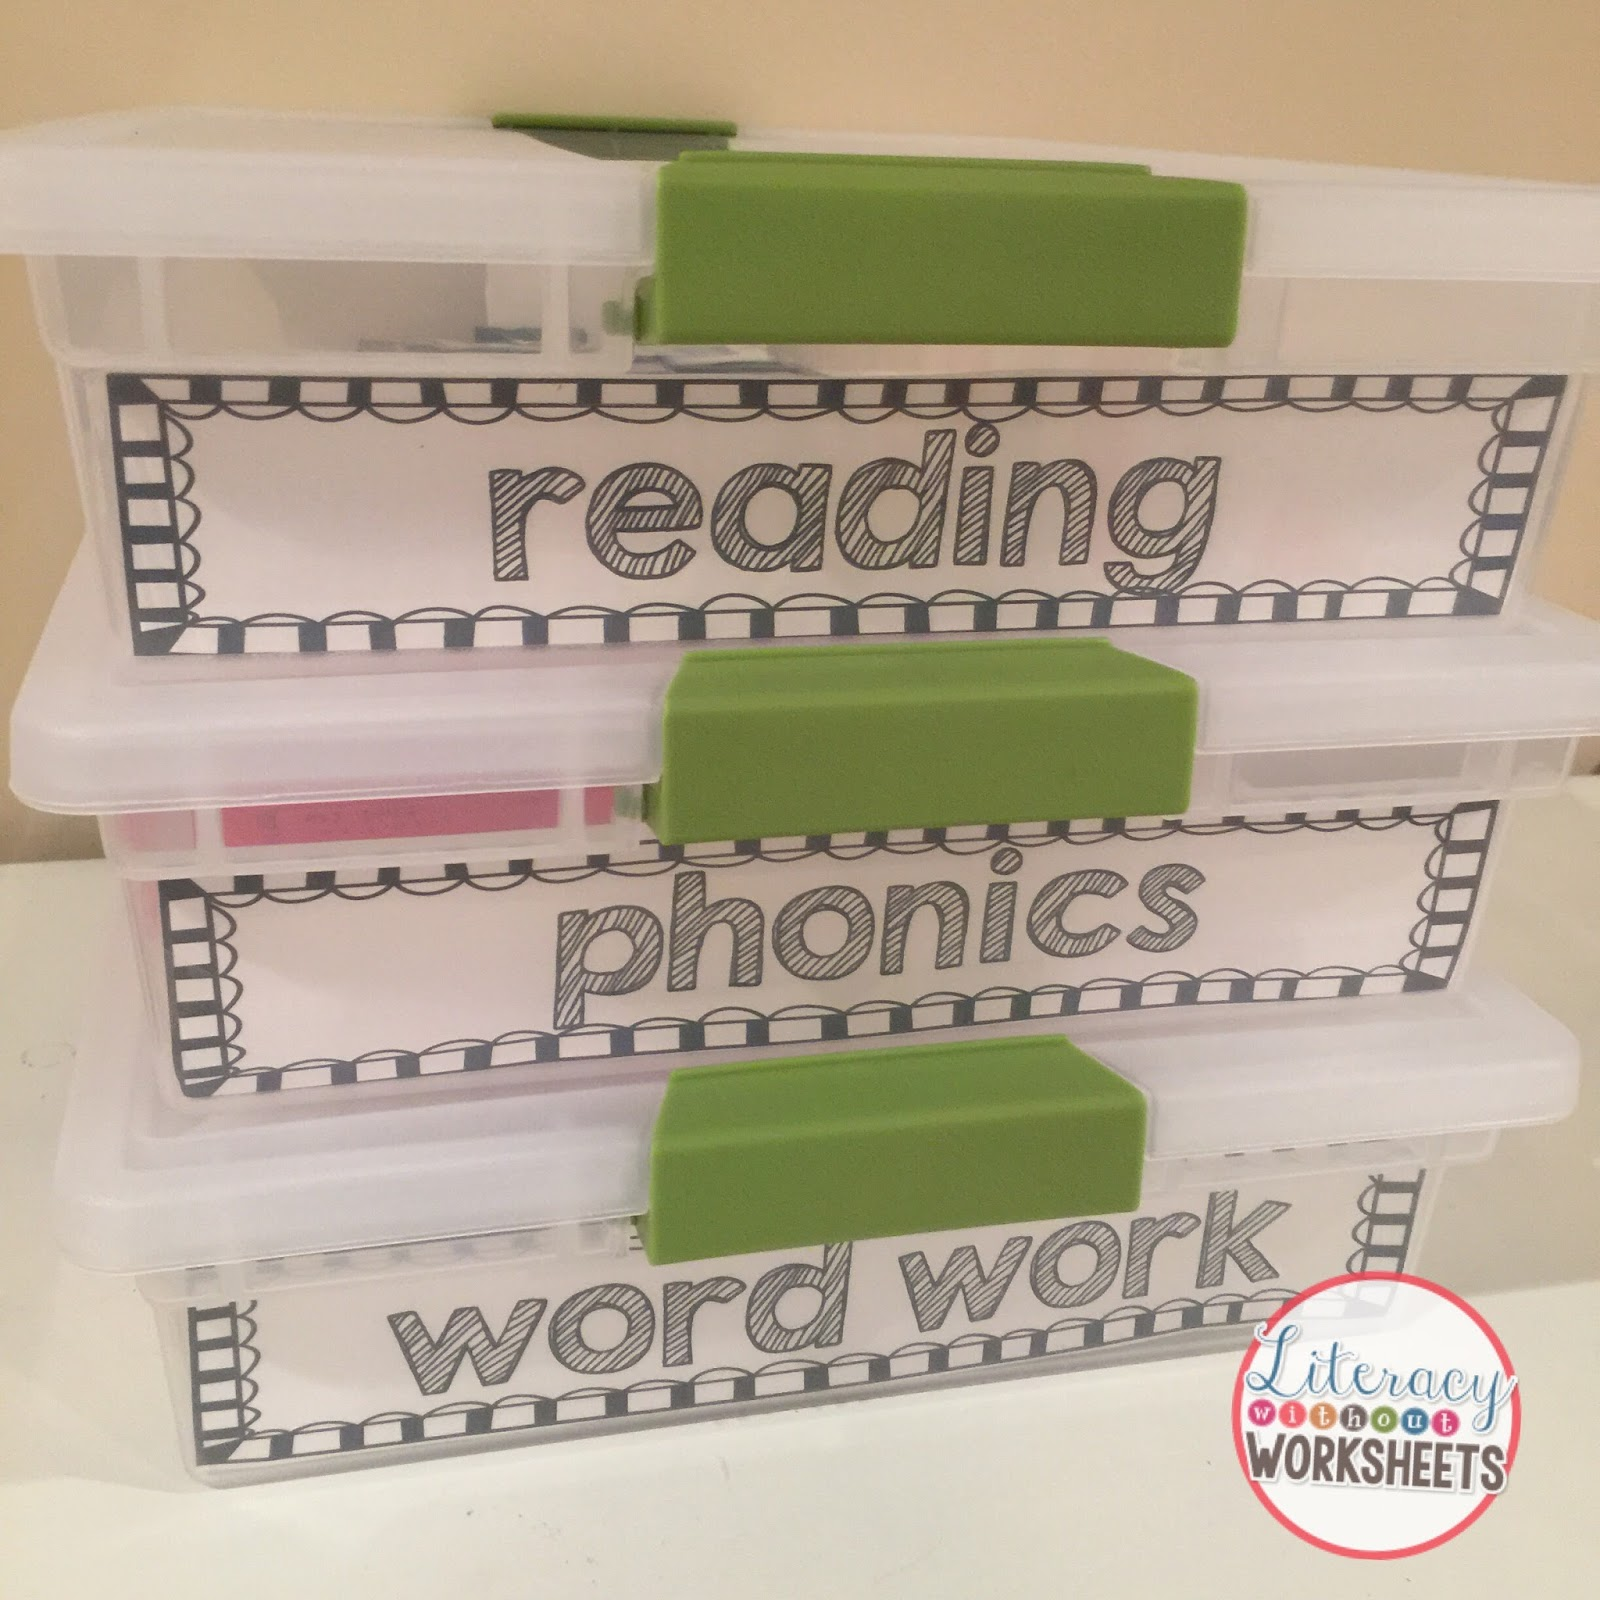 Differentiating Literacy Work Stations